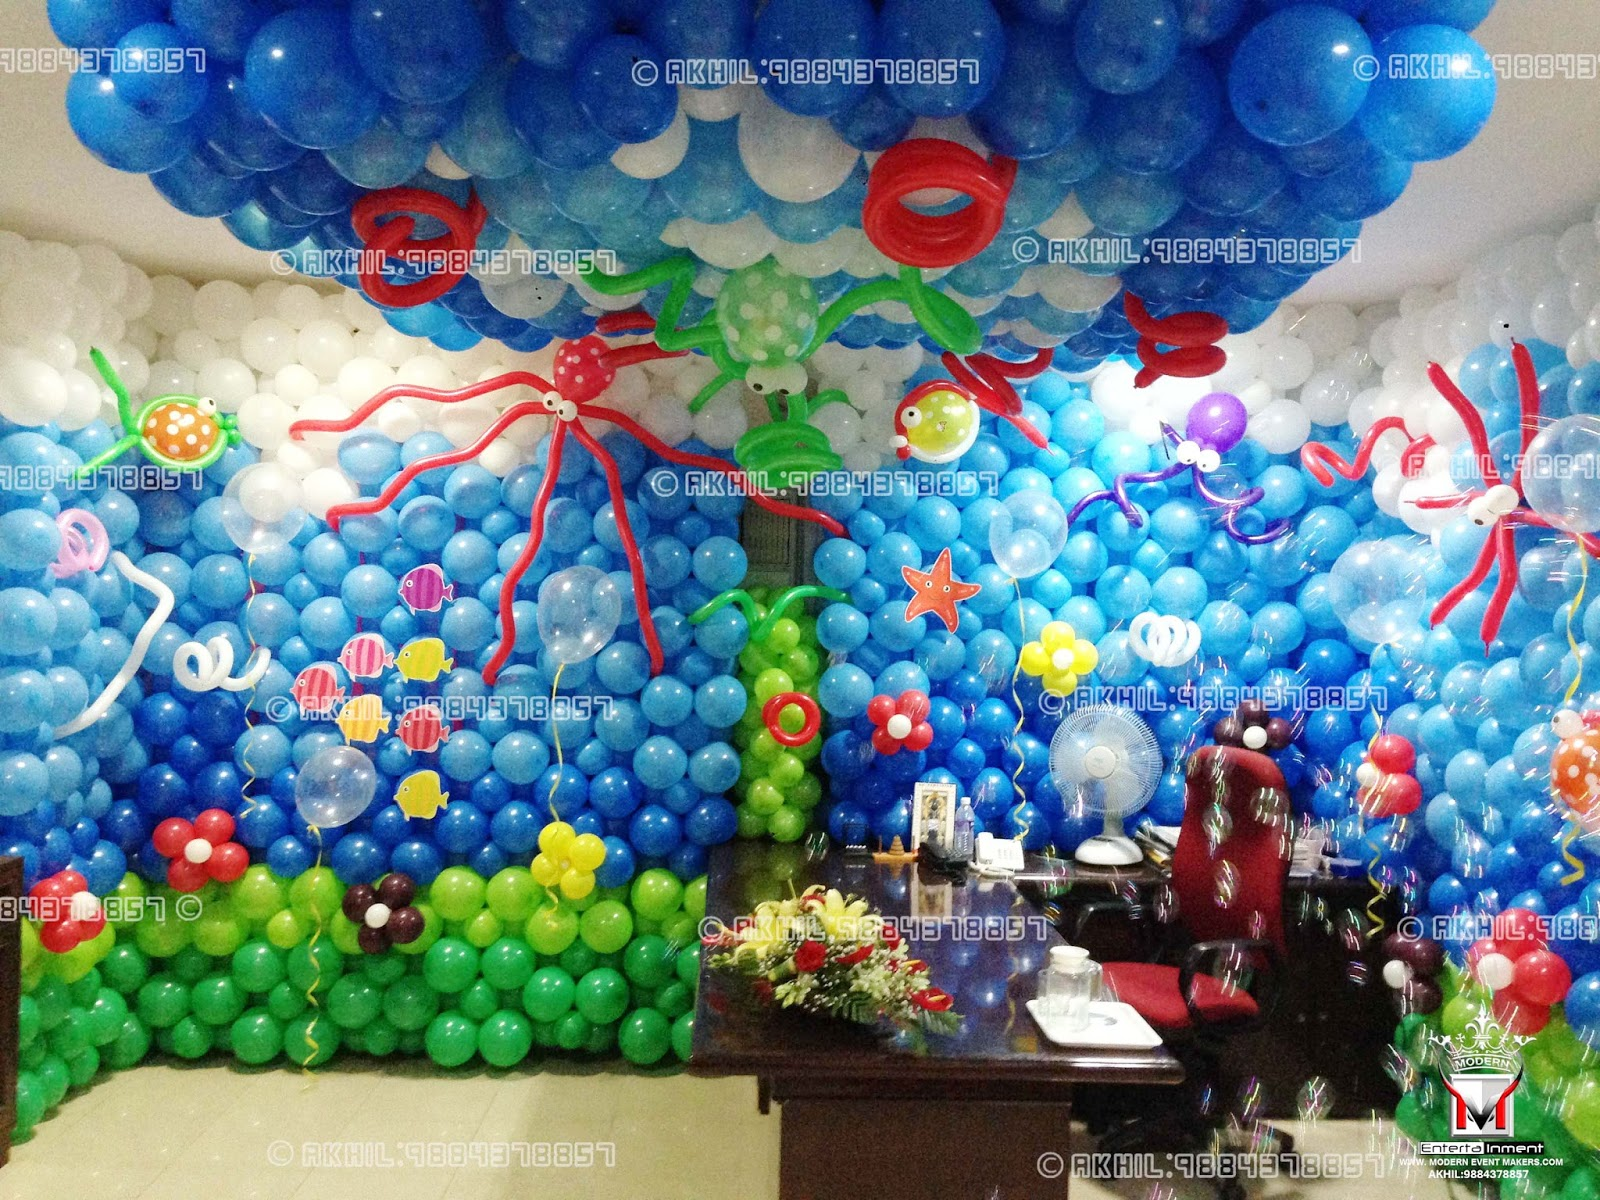 Floor Decor In Norco Ca Dance Floor Balloon Decorations Wood Floors